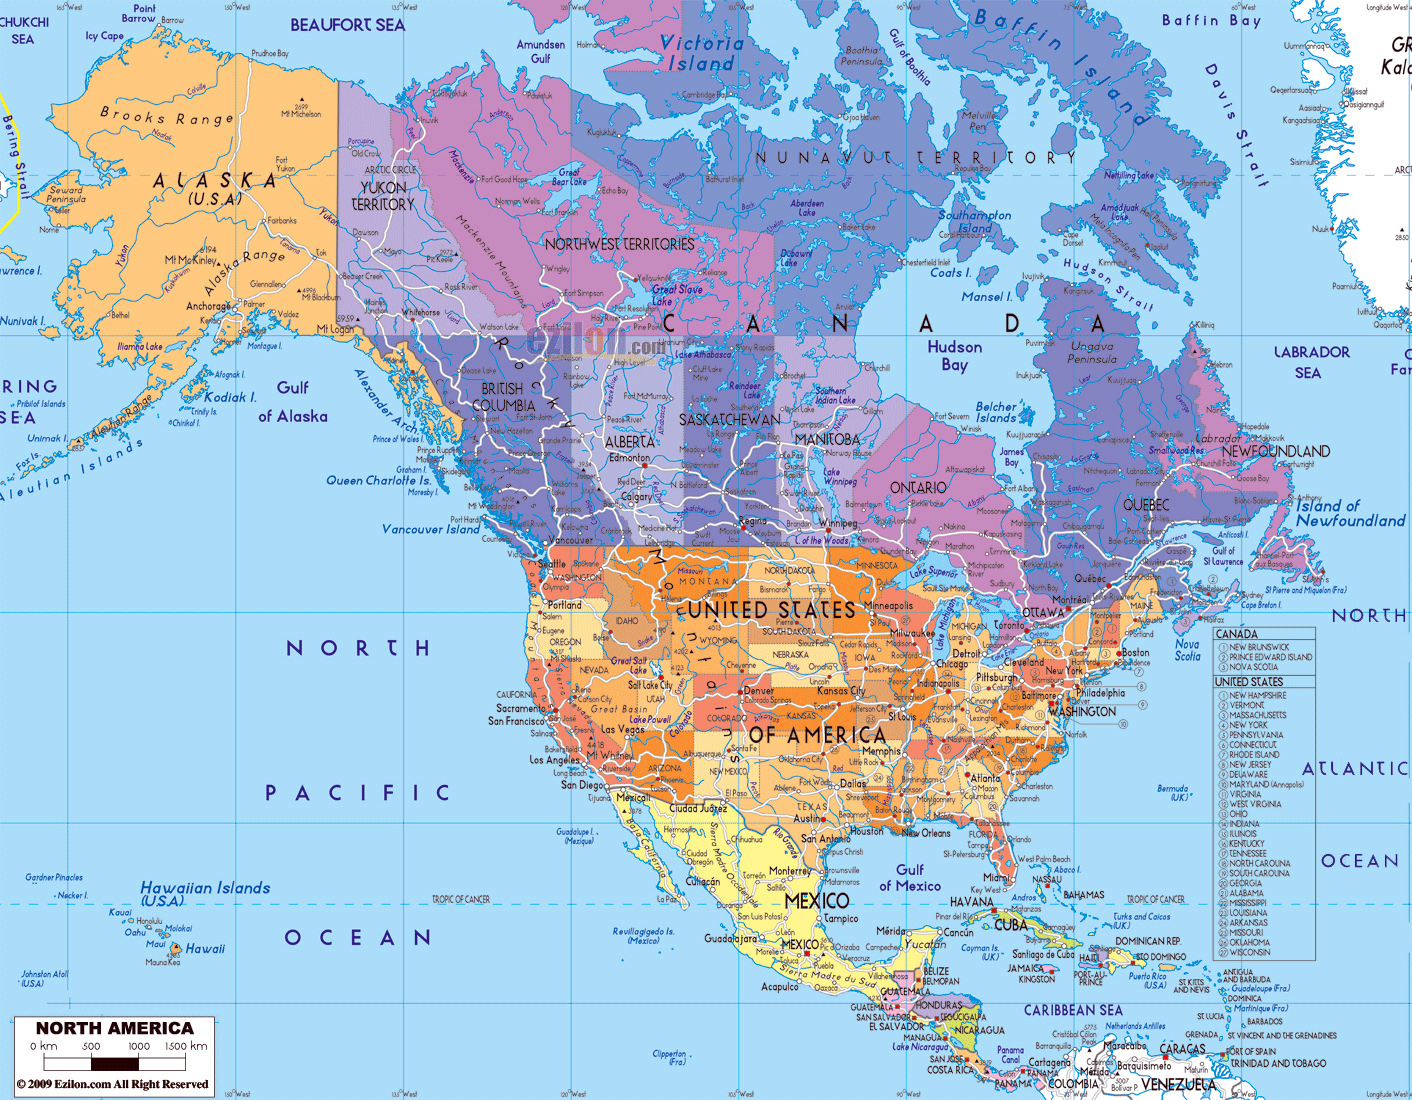 Detailed political map of North America with roads and major